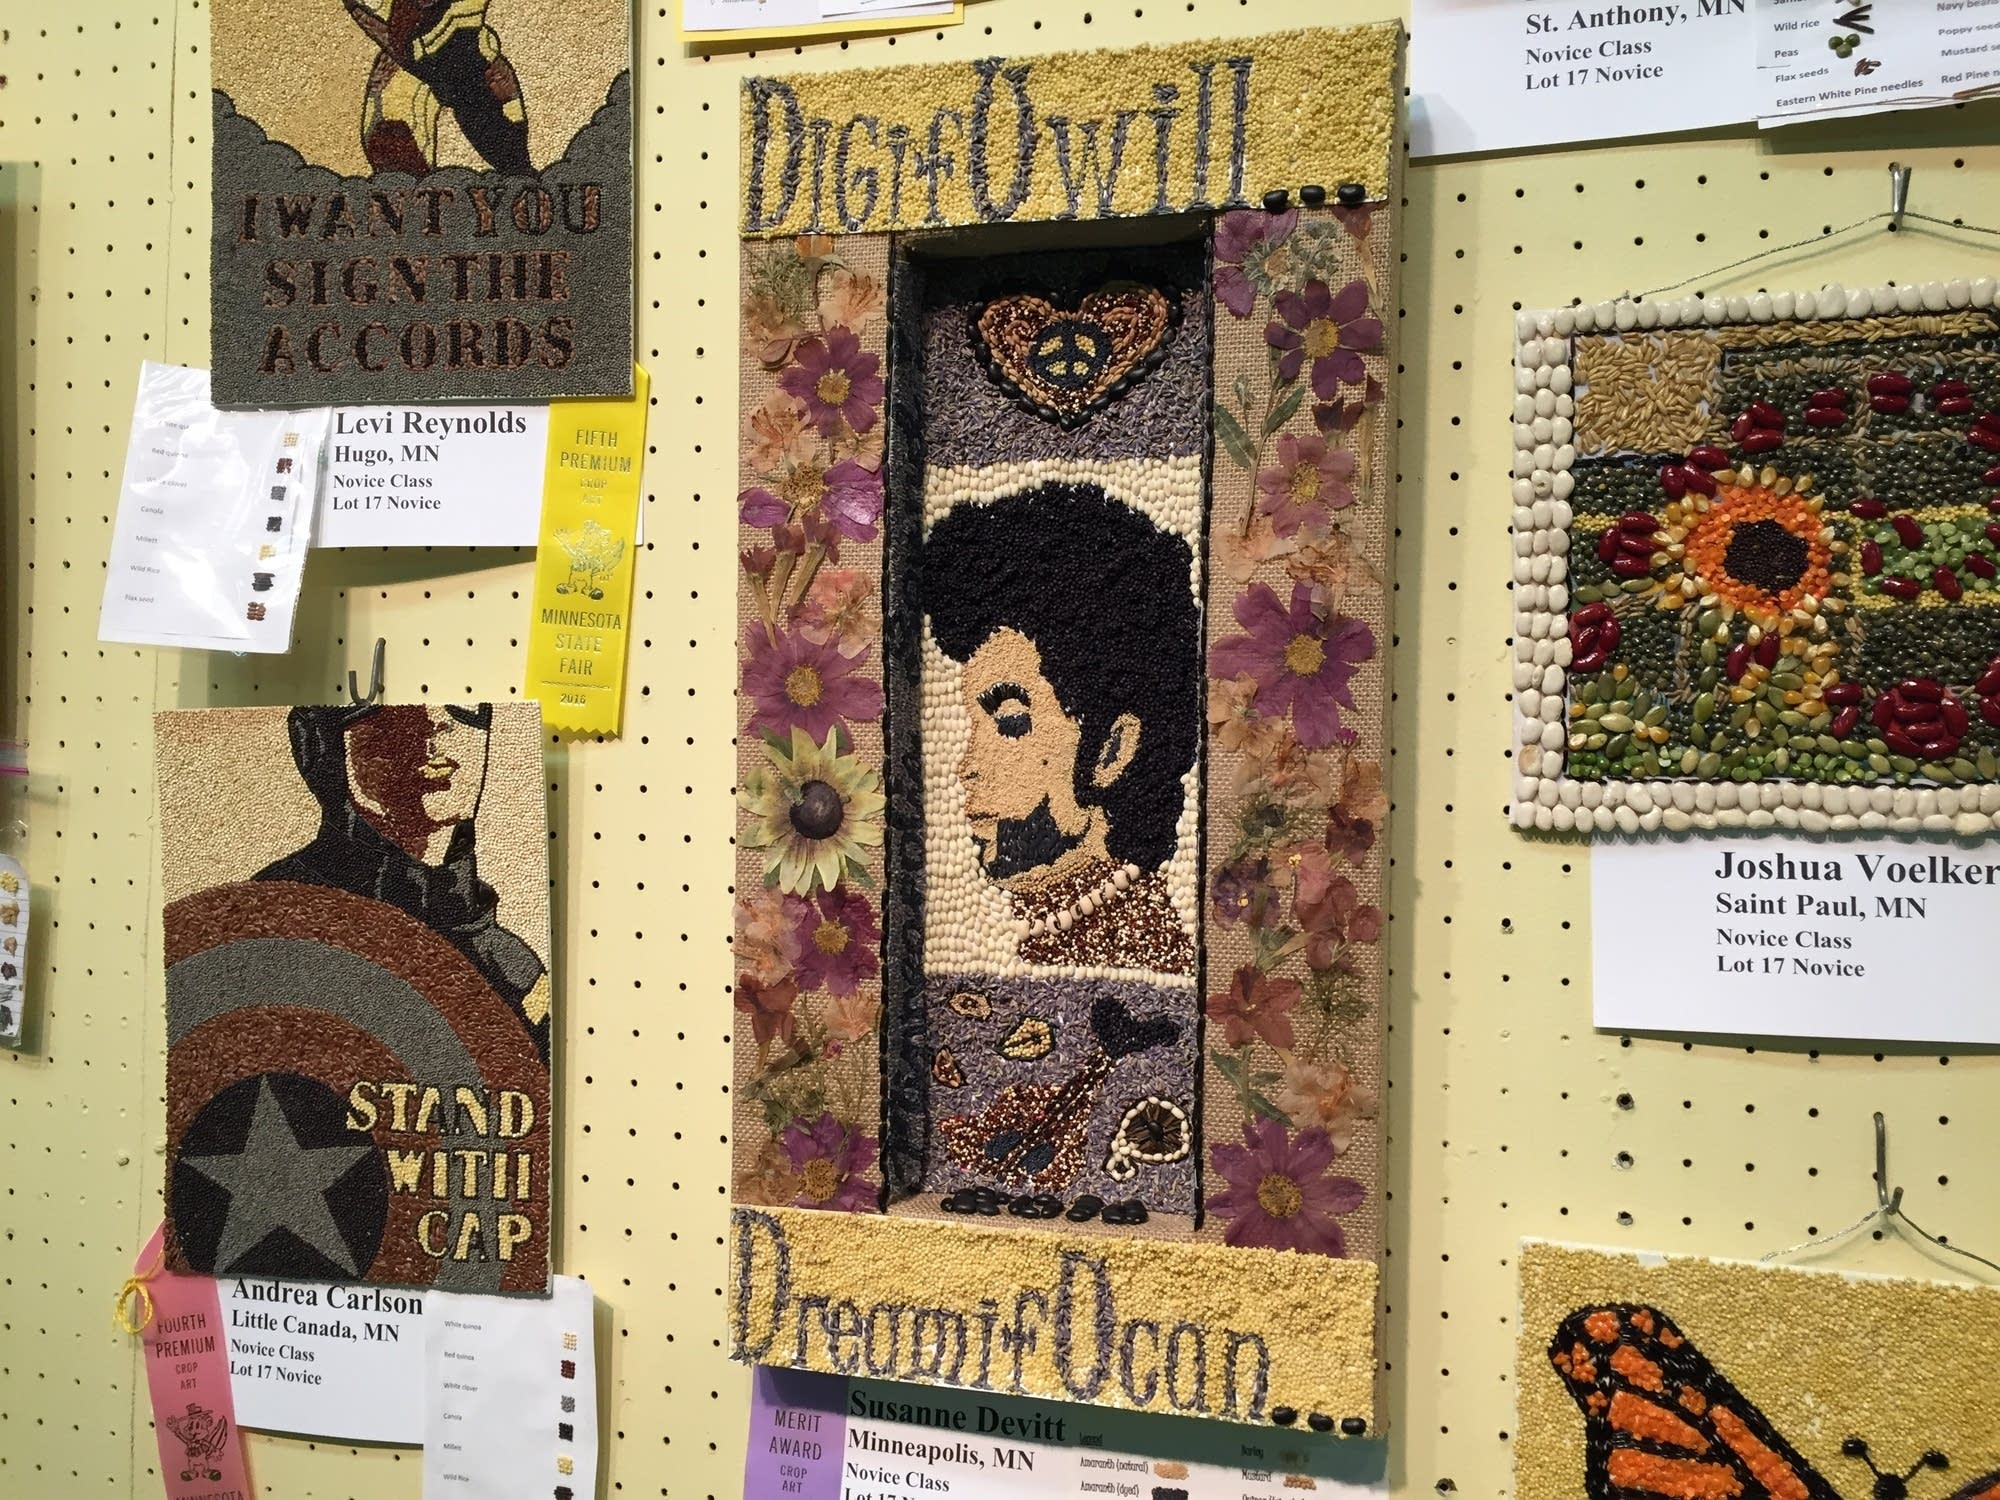 Prince seed art portrait from the 2016 Minnesota State Fair